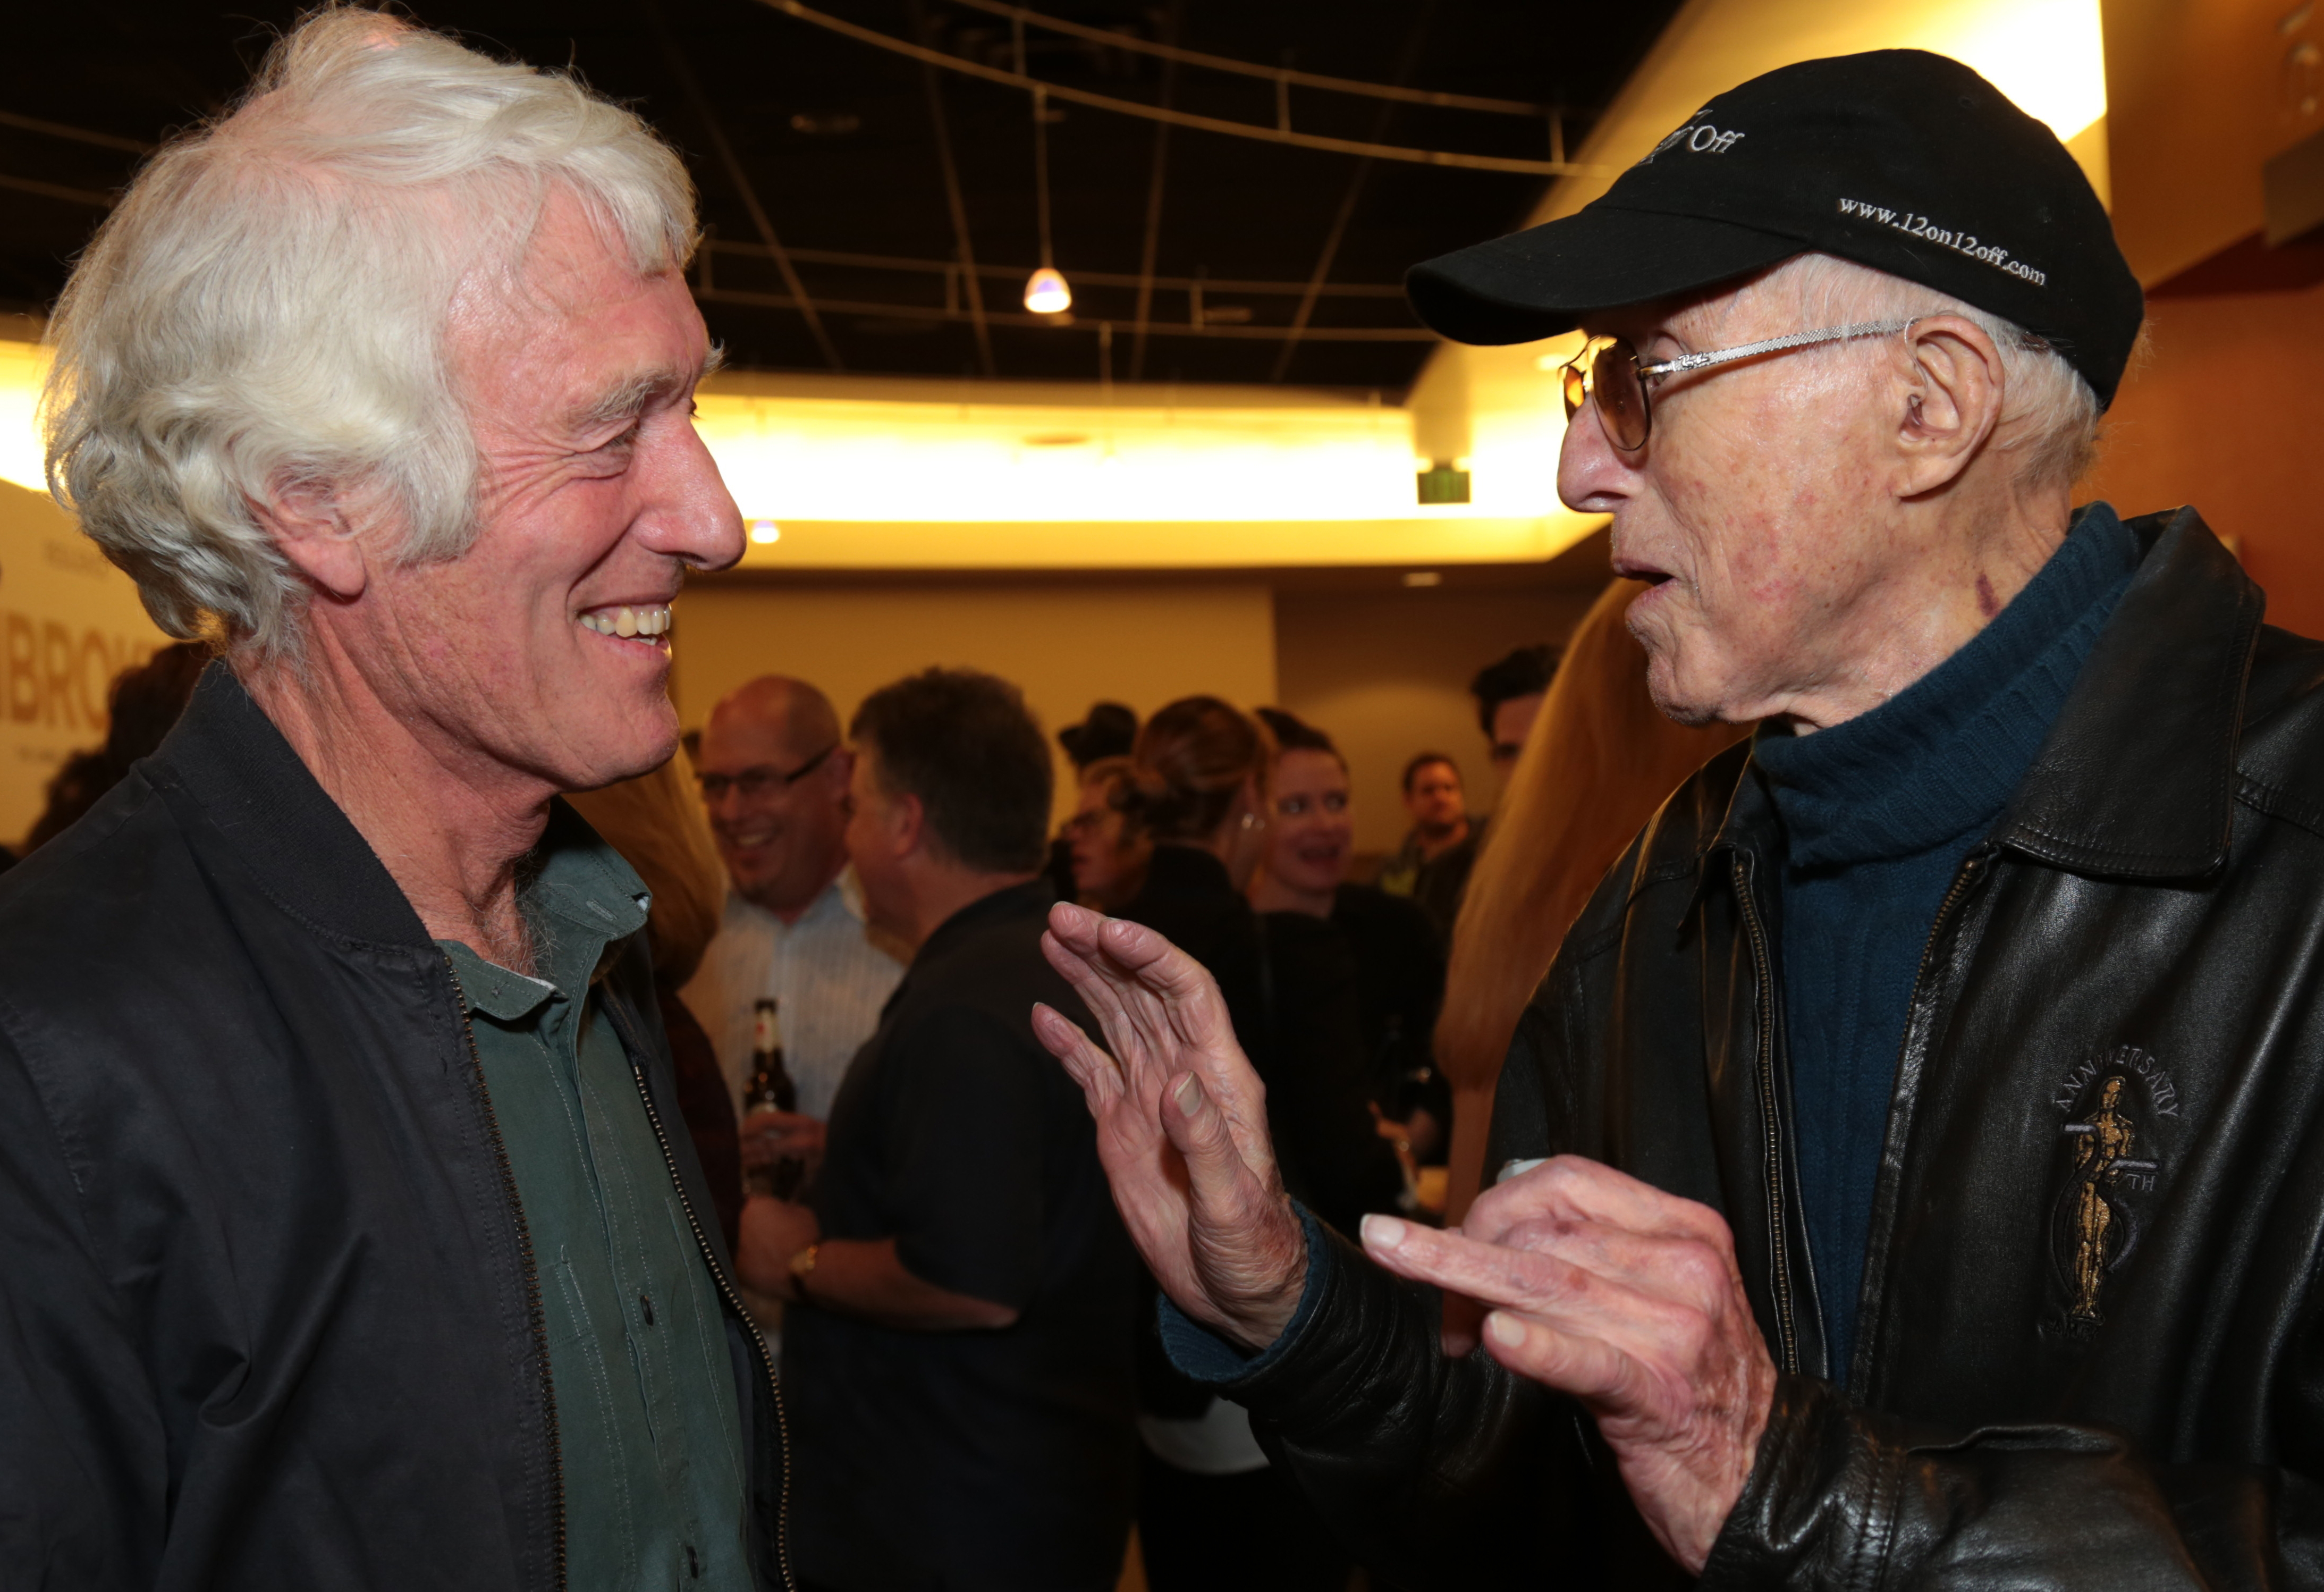 Deakins chats with Haskell Wexler, ASC.